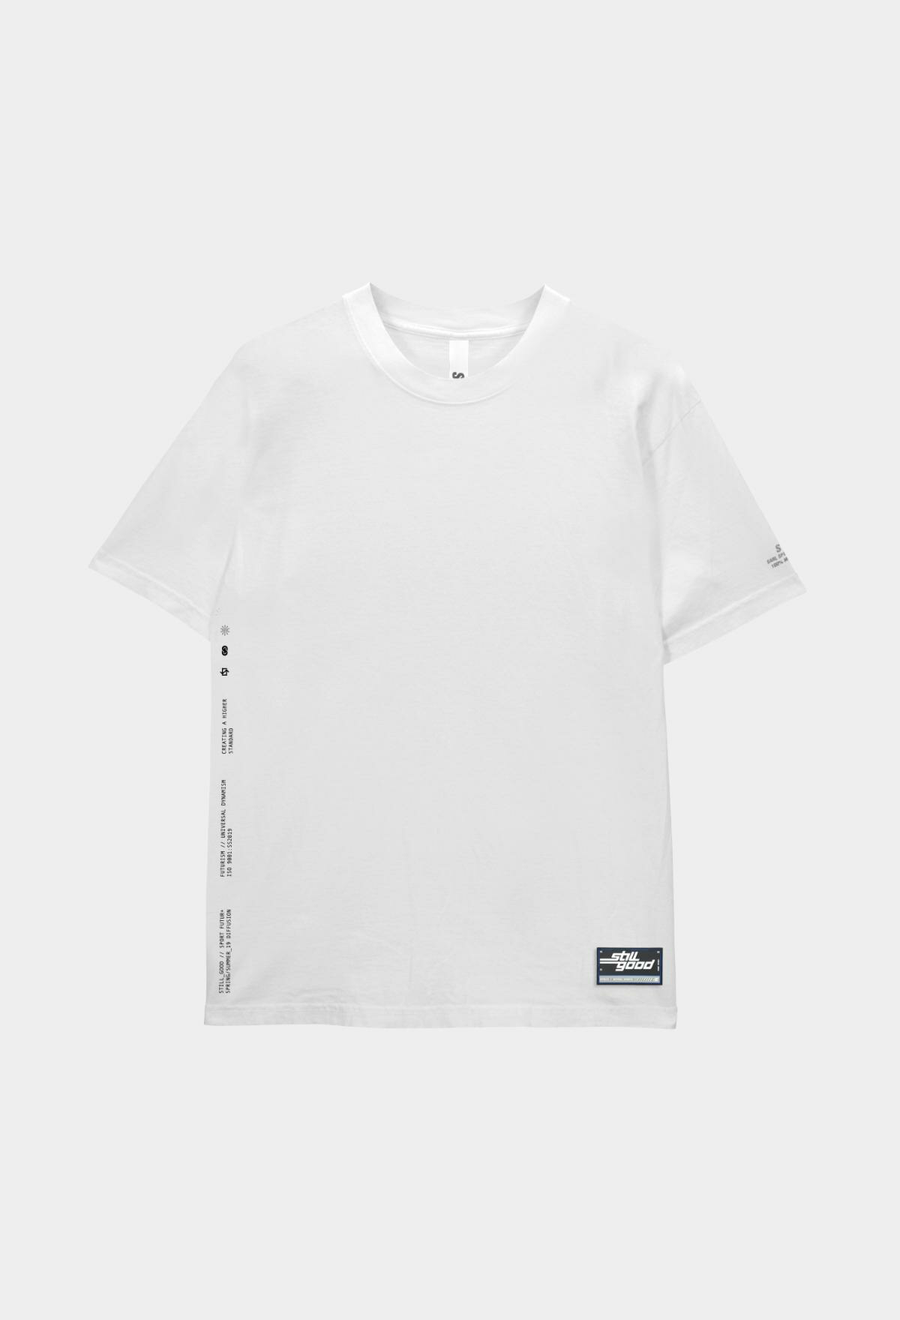 Basic Patch Tee White / XS | Still Good